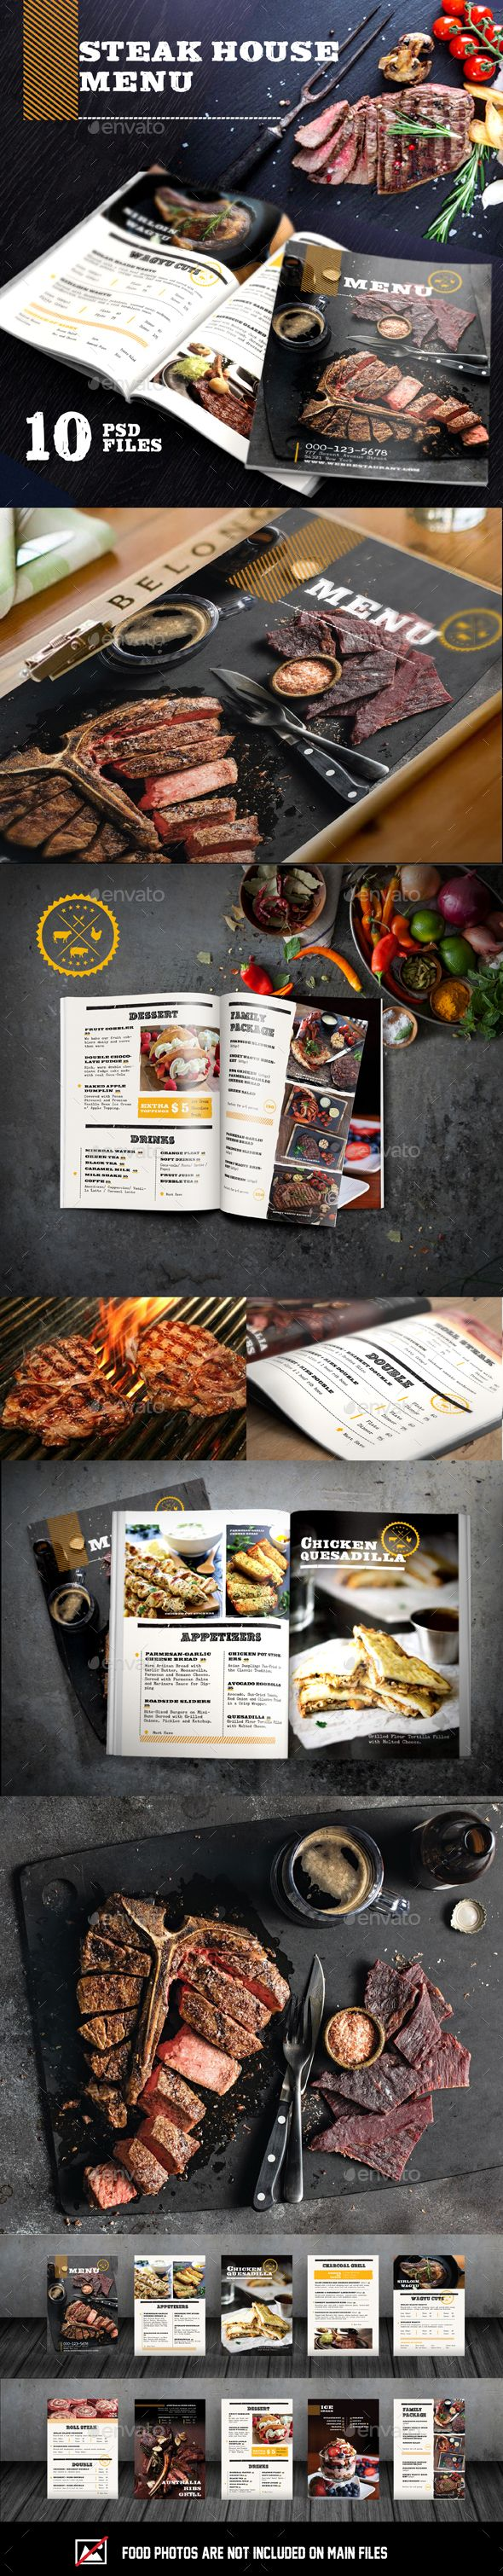 Steak House. Vintage Food Menu. Creative food menu templates for your restaurant business.  More #food #menu for your #brand you can download here ➝ https://graphicriver.net/category/print-templates/food-menus?ref=Marchiez